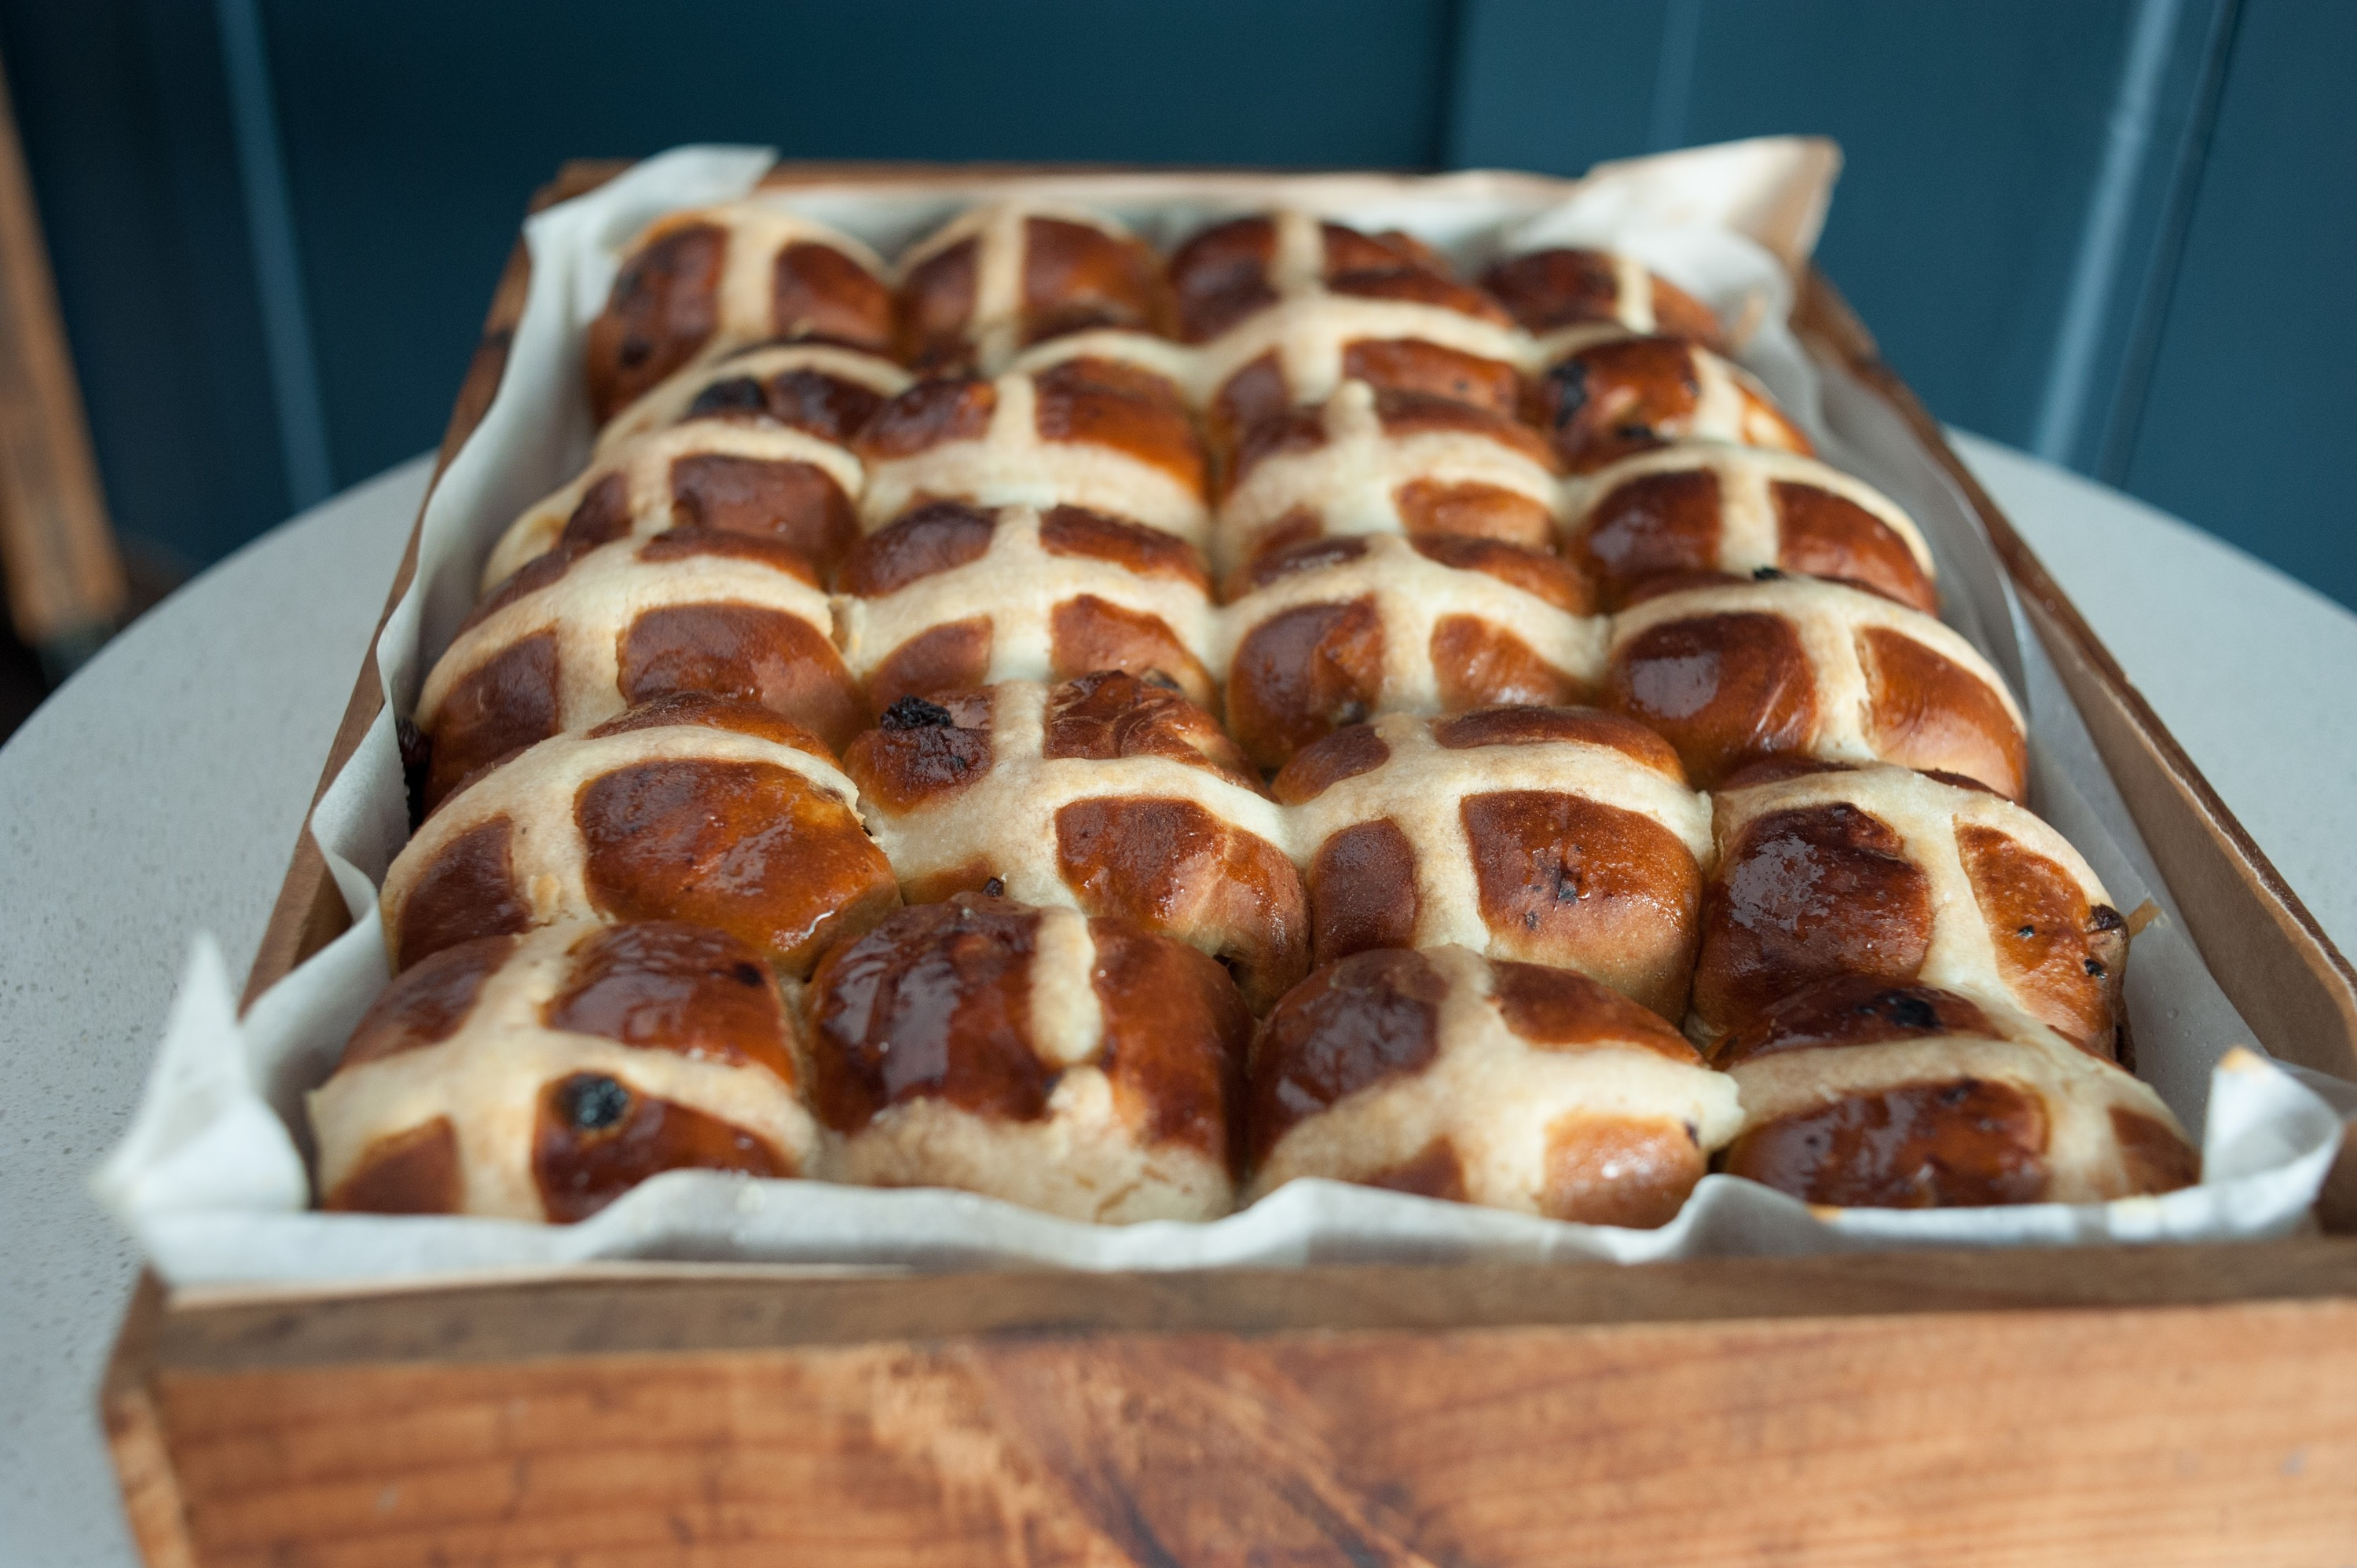 A wooden tray of hot cross buns